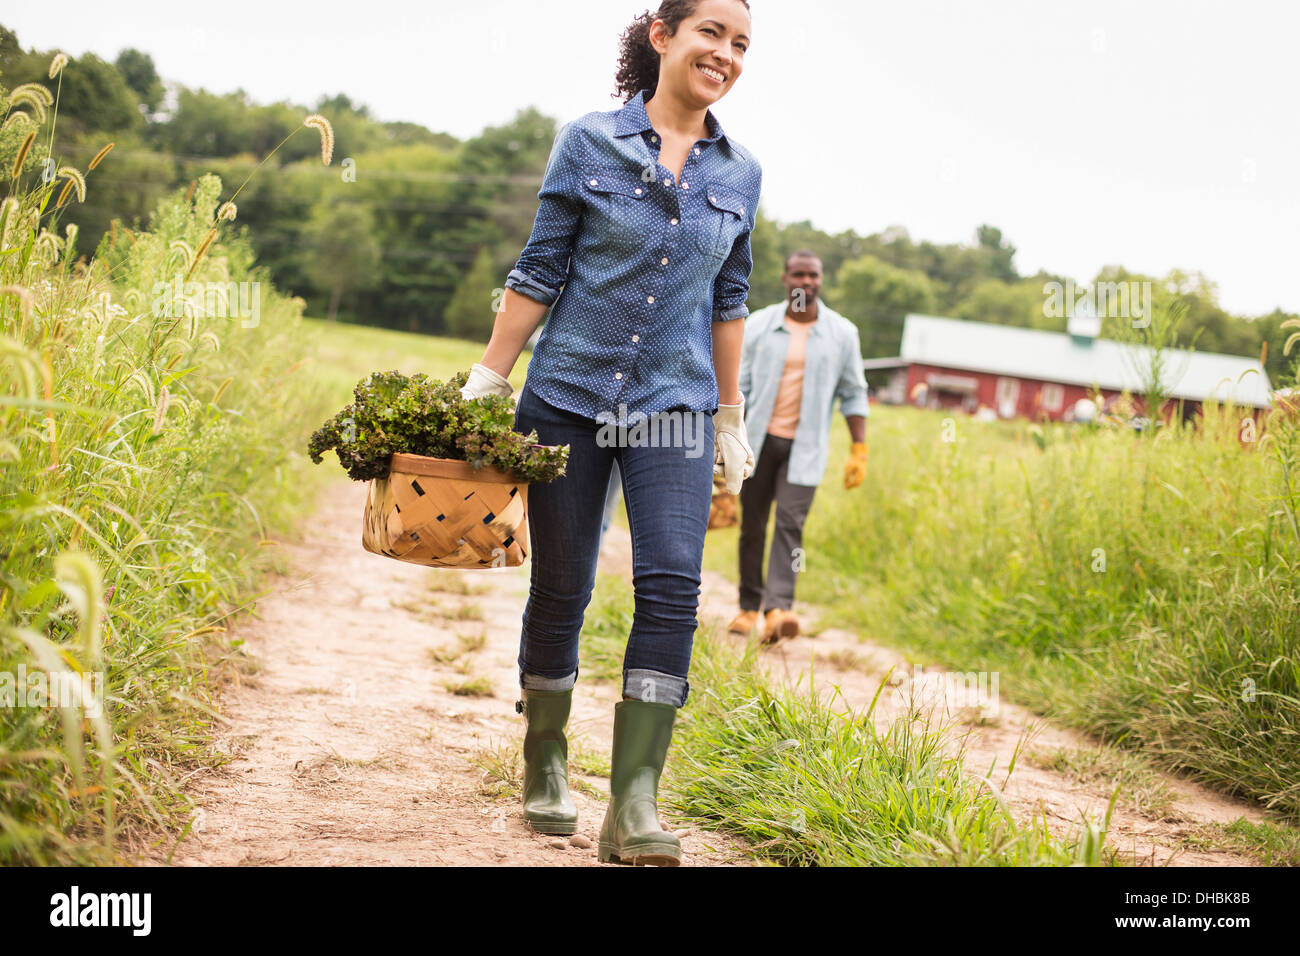 Two people working on an organic farm. Carrying baskets of fresh picked vegetables. - Stock Image